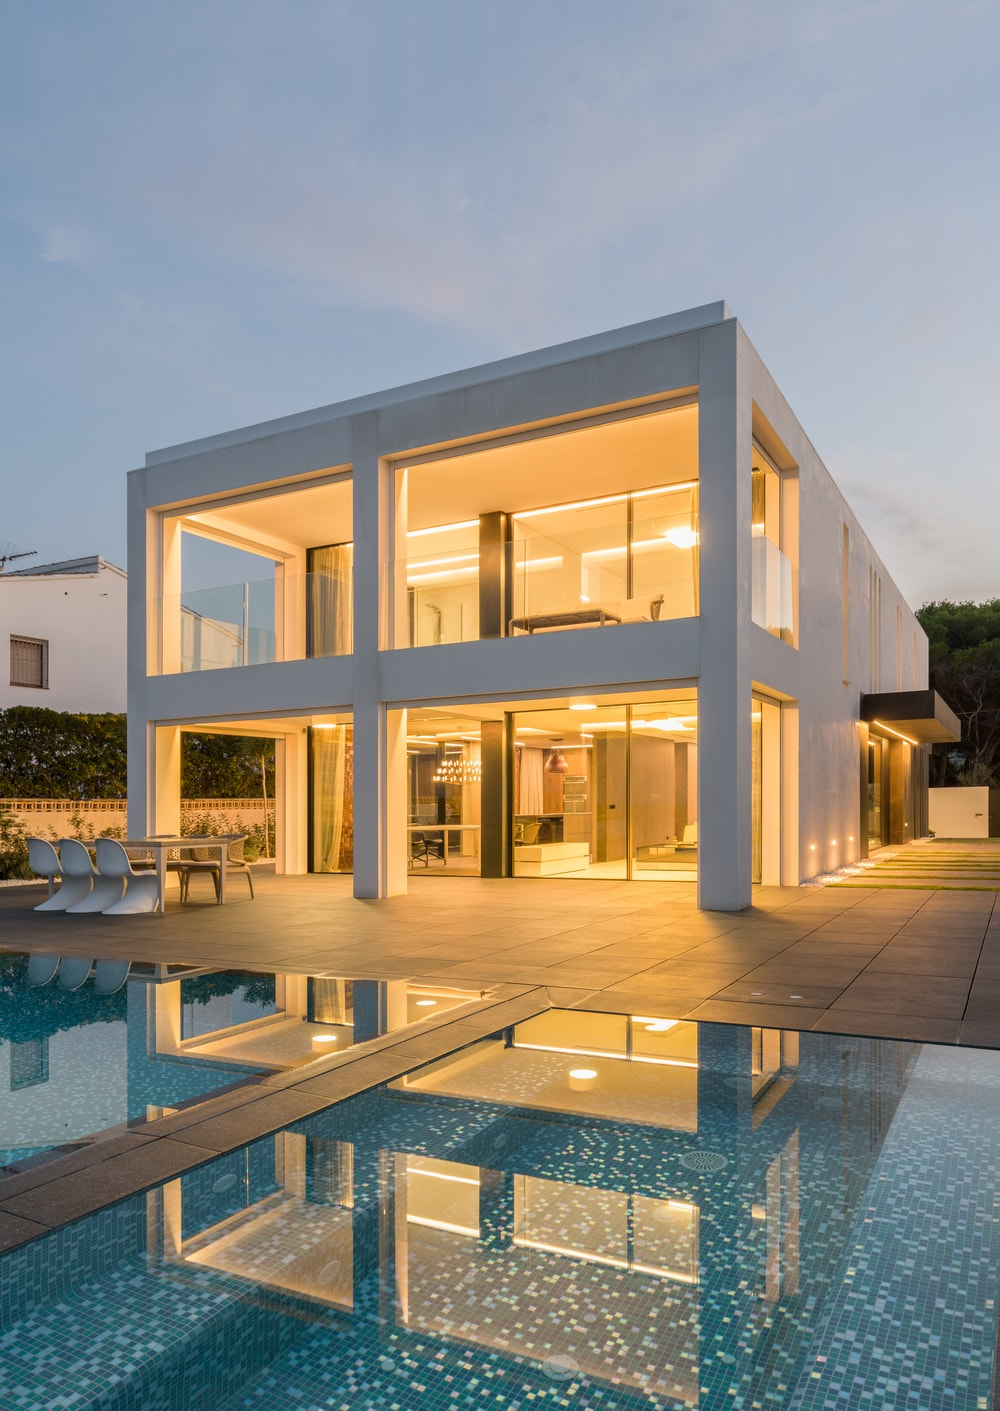 You can clearly see the different sections of the interiors of the house from the back through the large glass walls. These really go well with the white exteriors of the house.